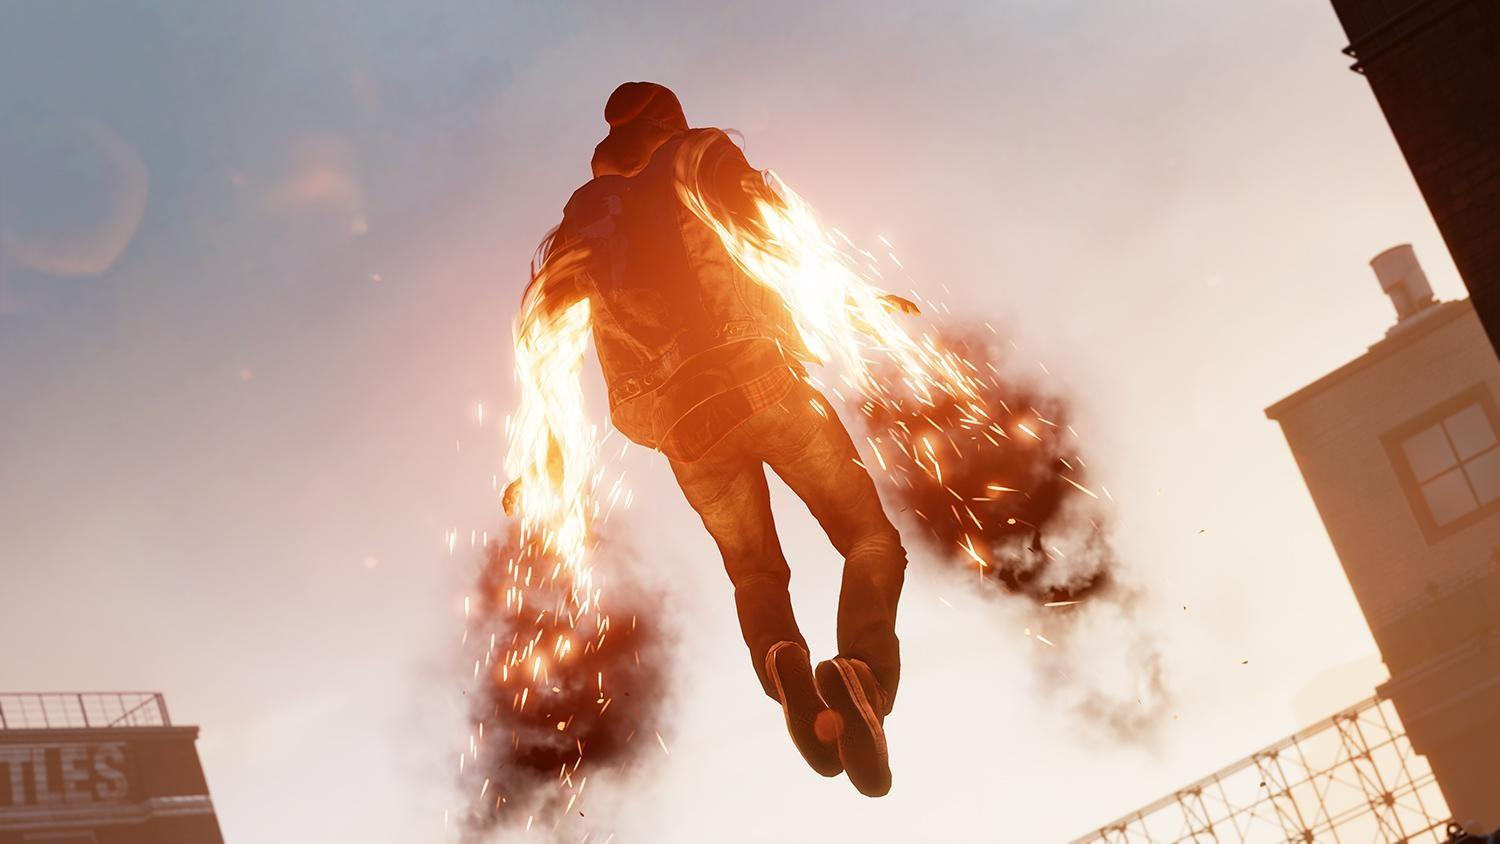 inFAMOUS Second Son hover